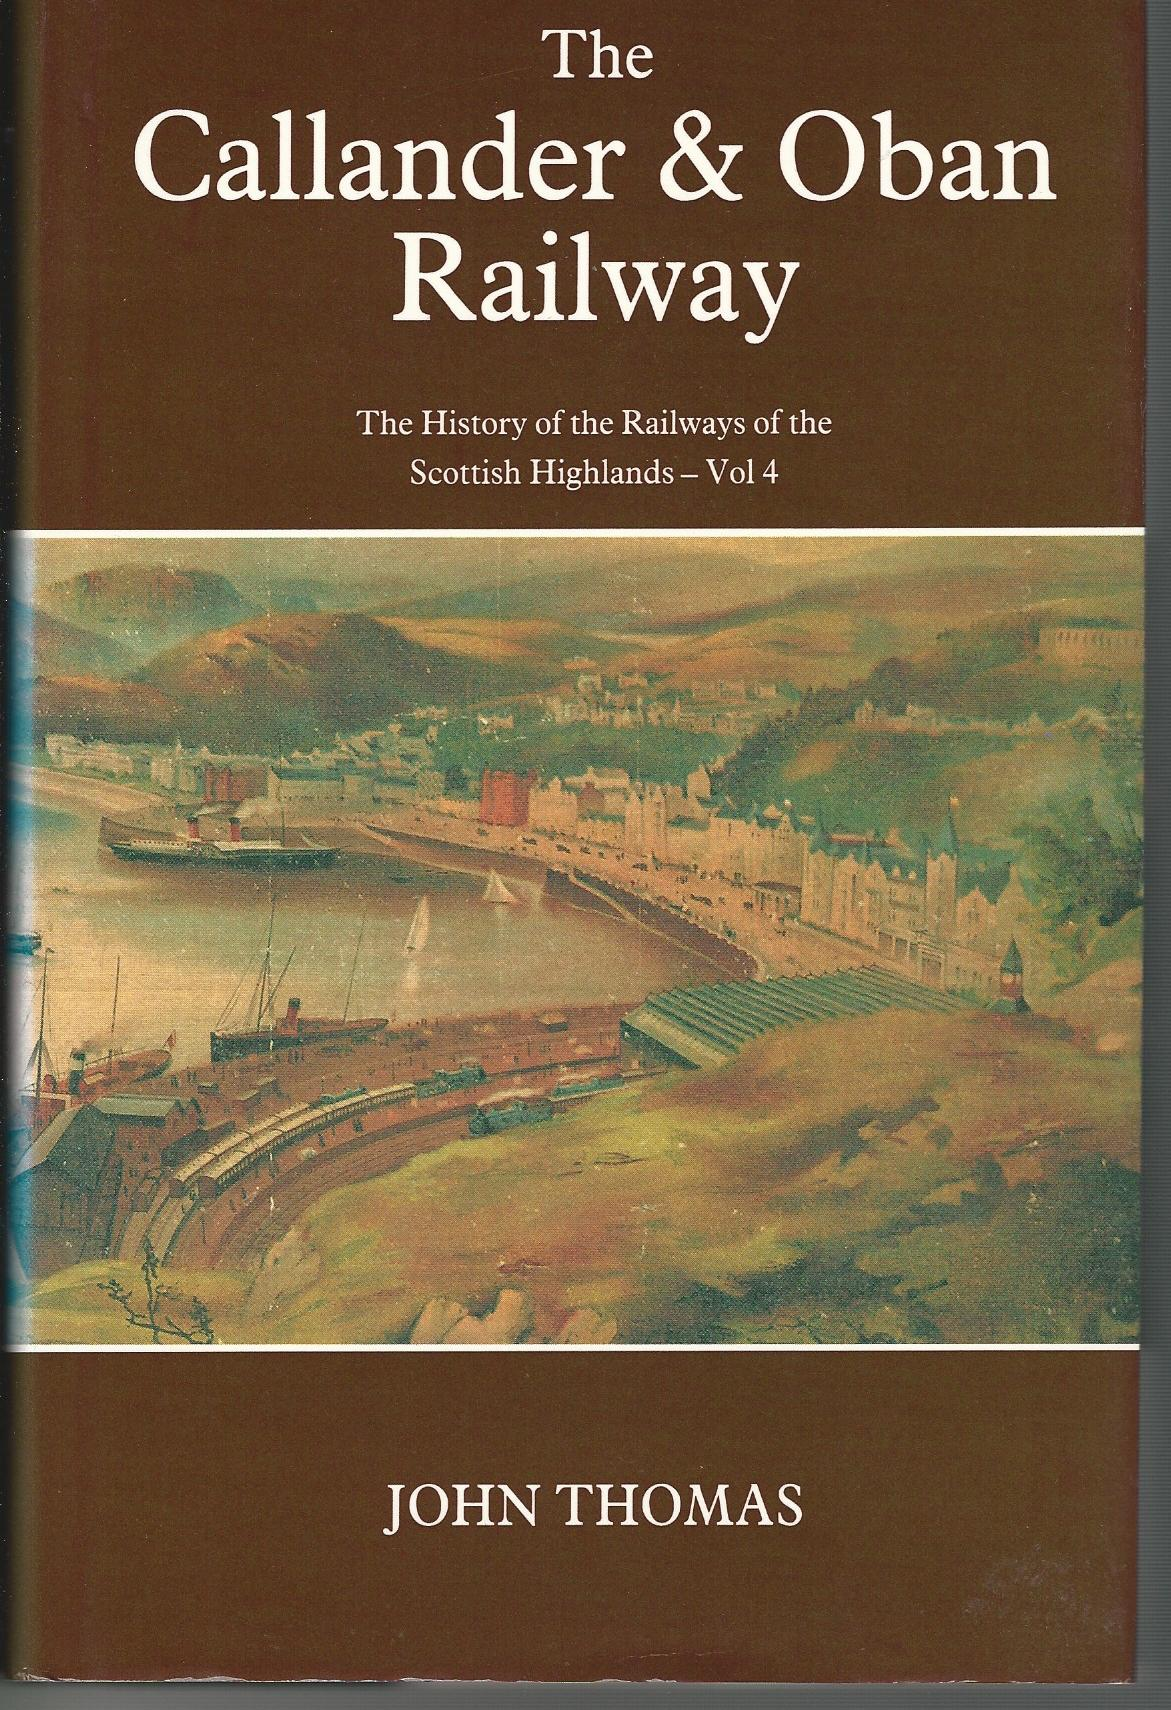 Image for History of the Railways of the Scottish Highlands: Callander and Oban Railway volume 4